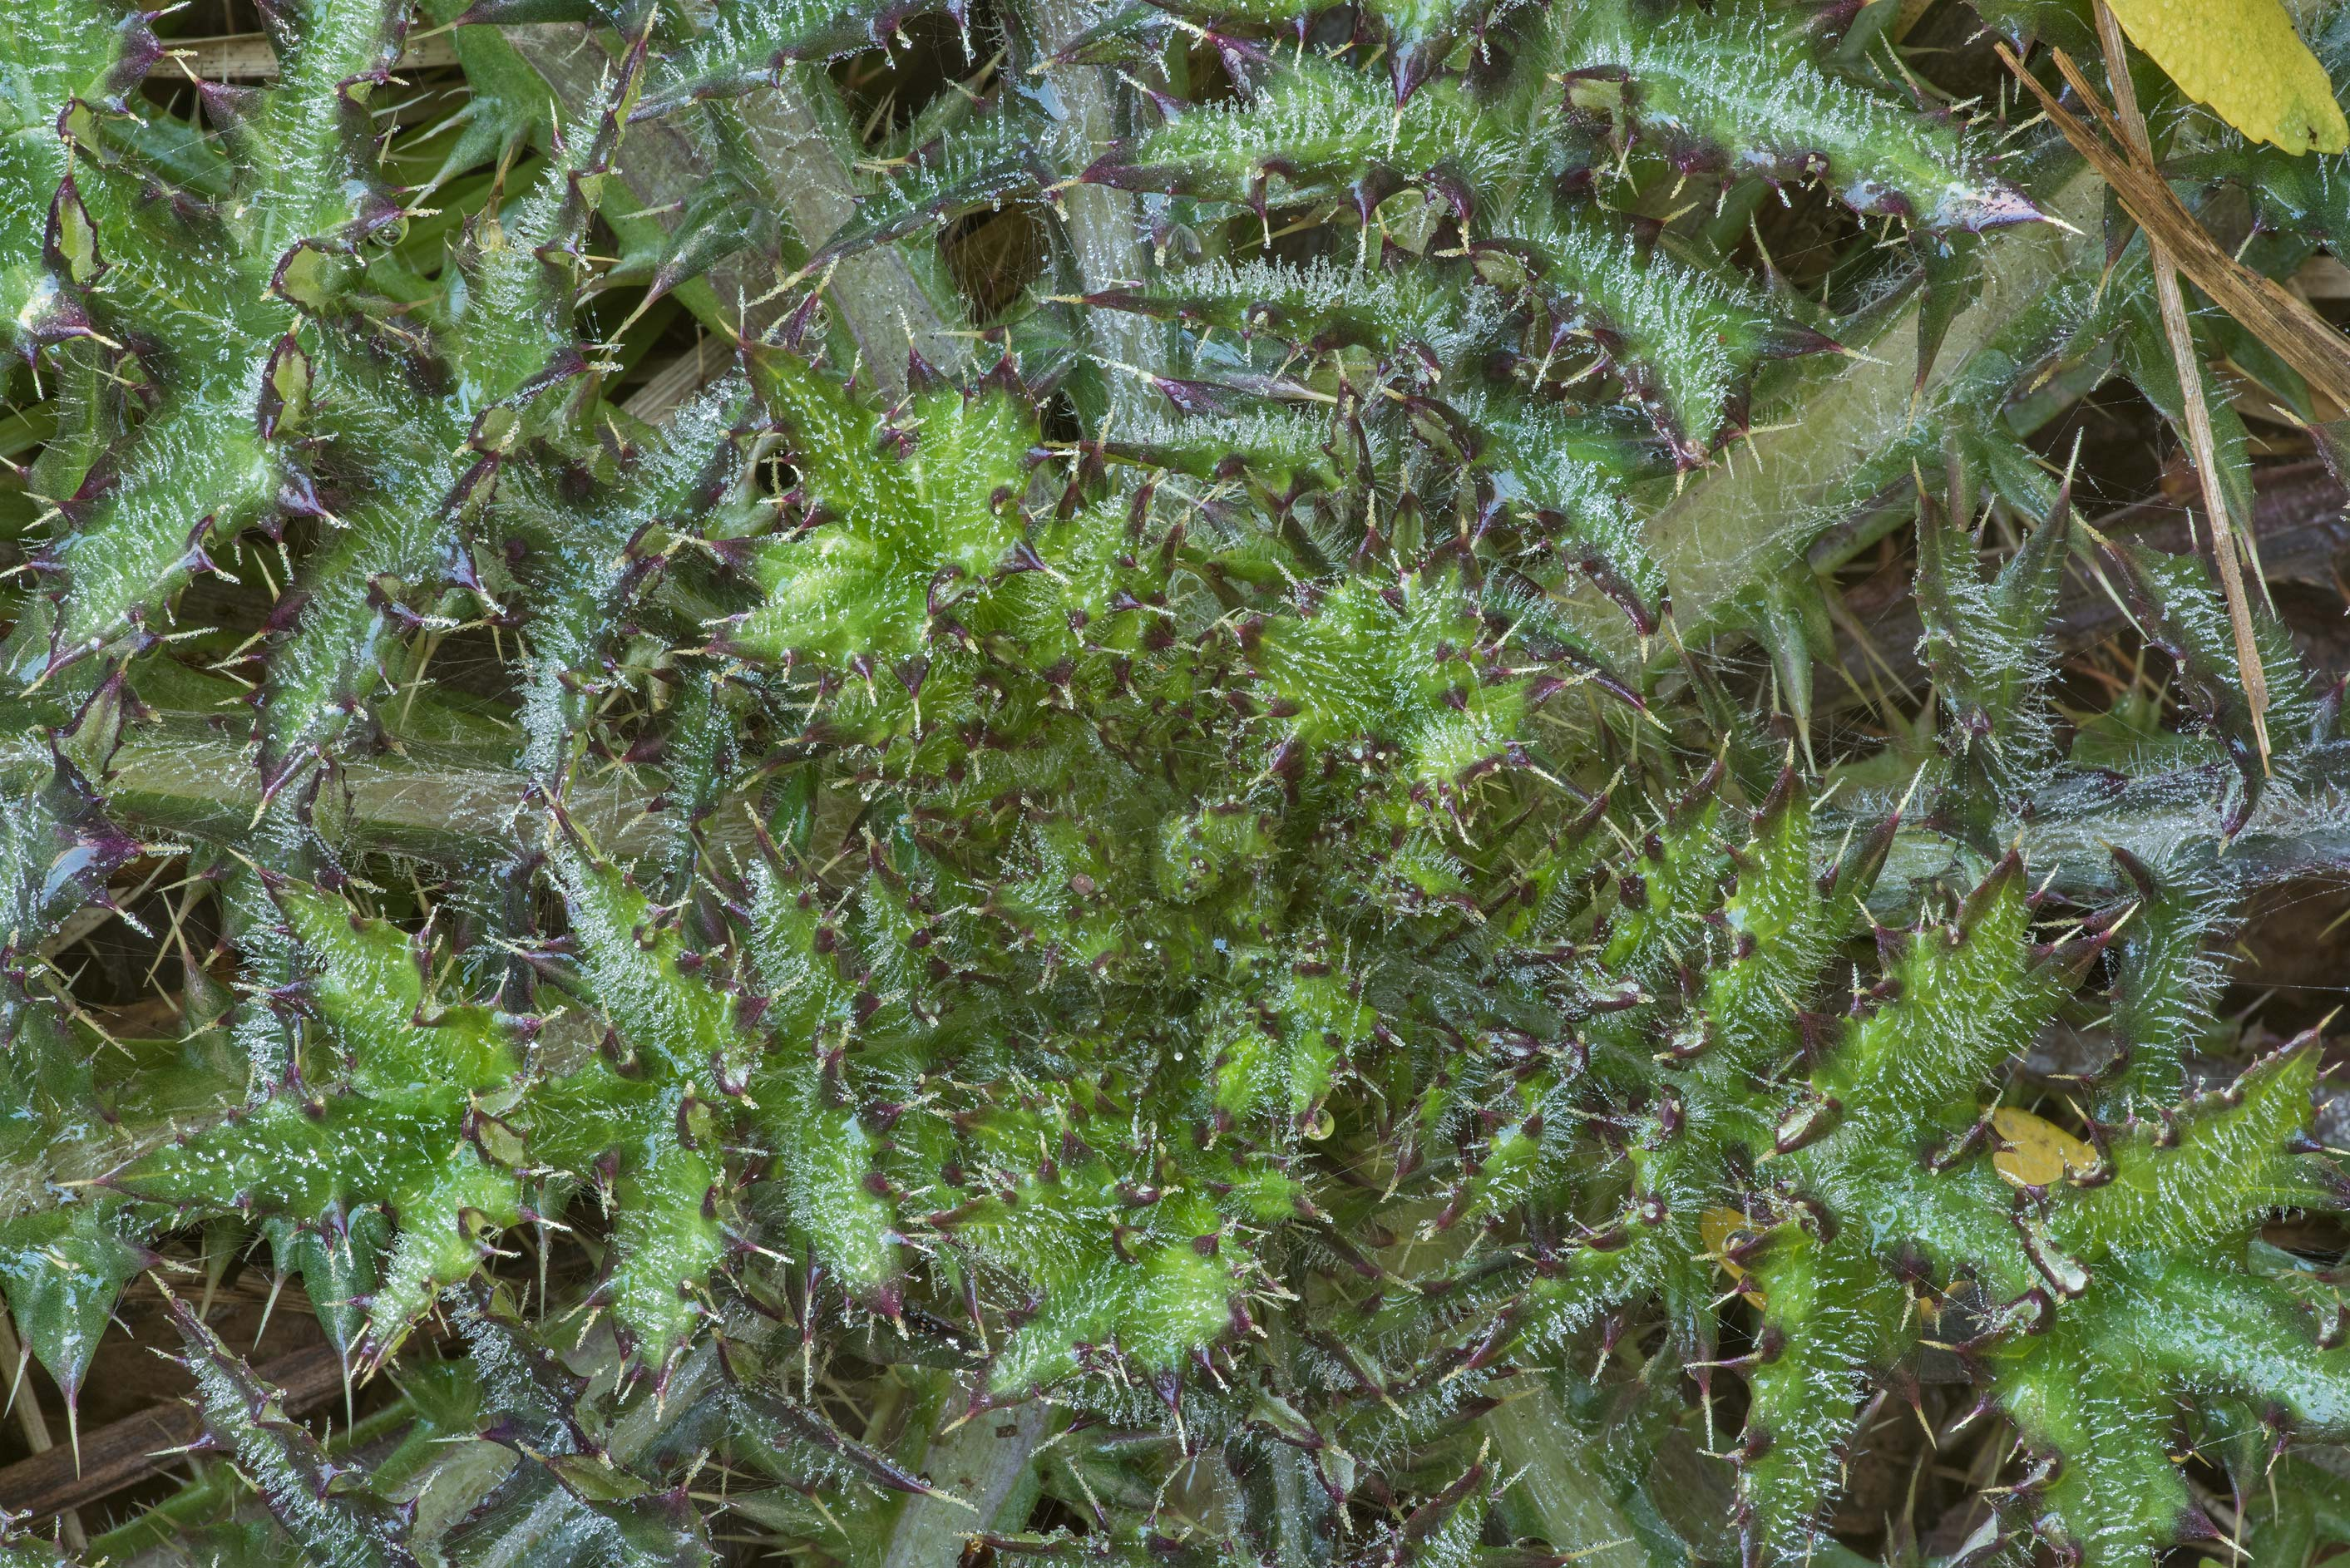 Winter rosette of leaves of thistle (Cirsium) in Lick Creek Park. College Station, Texas